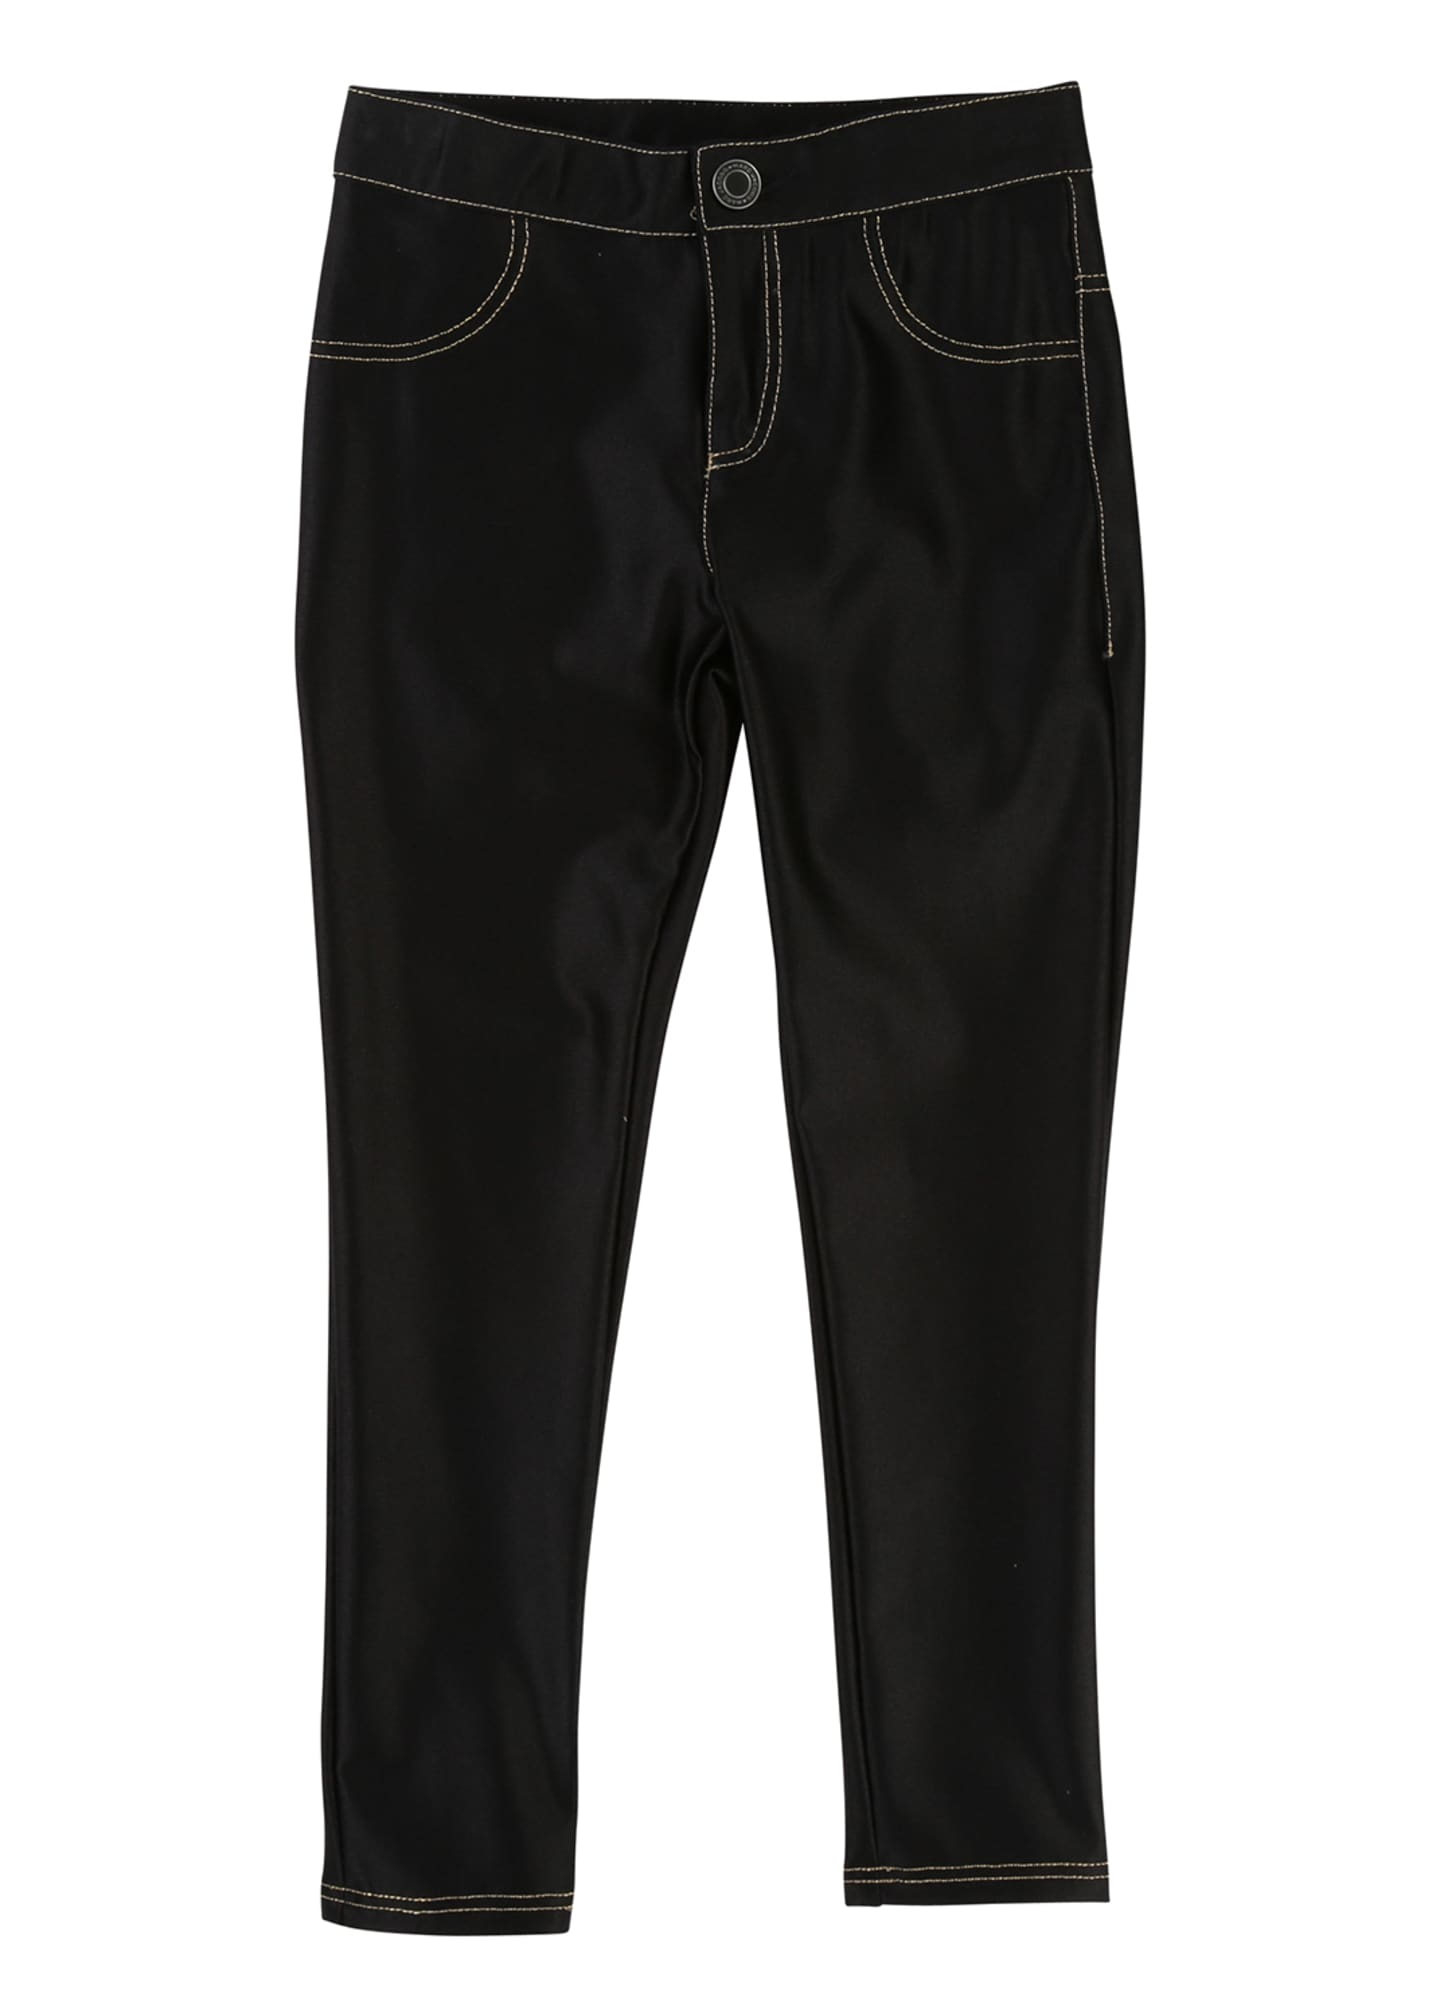 Little Marc Jacobs Satiny Stretch Trousers, Size 6-10